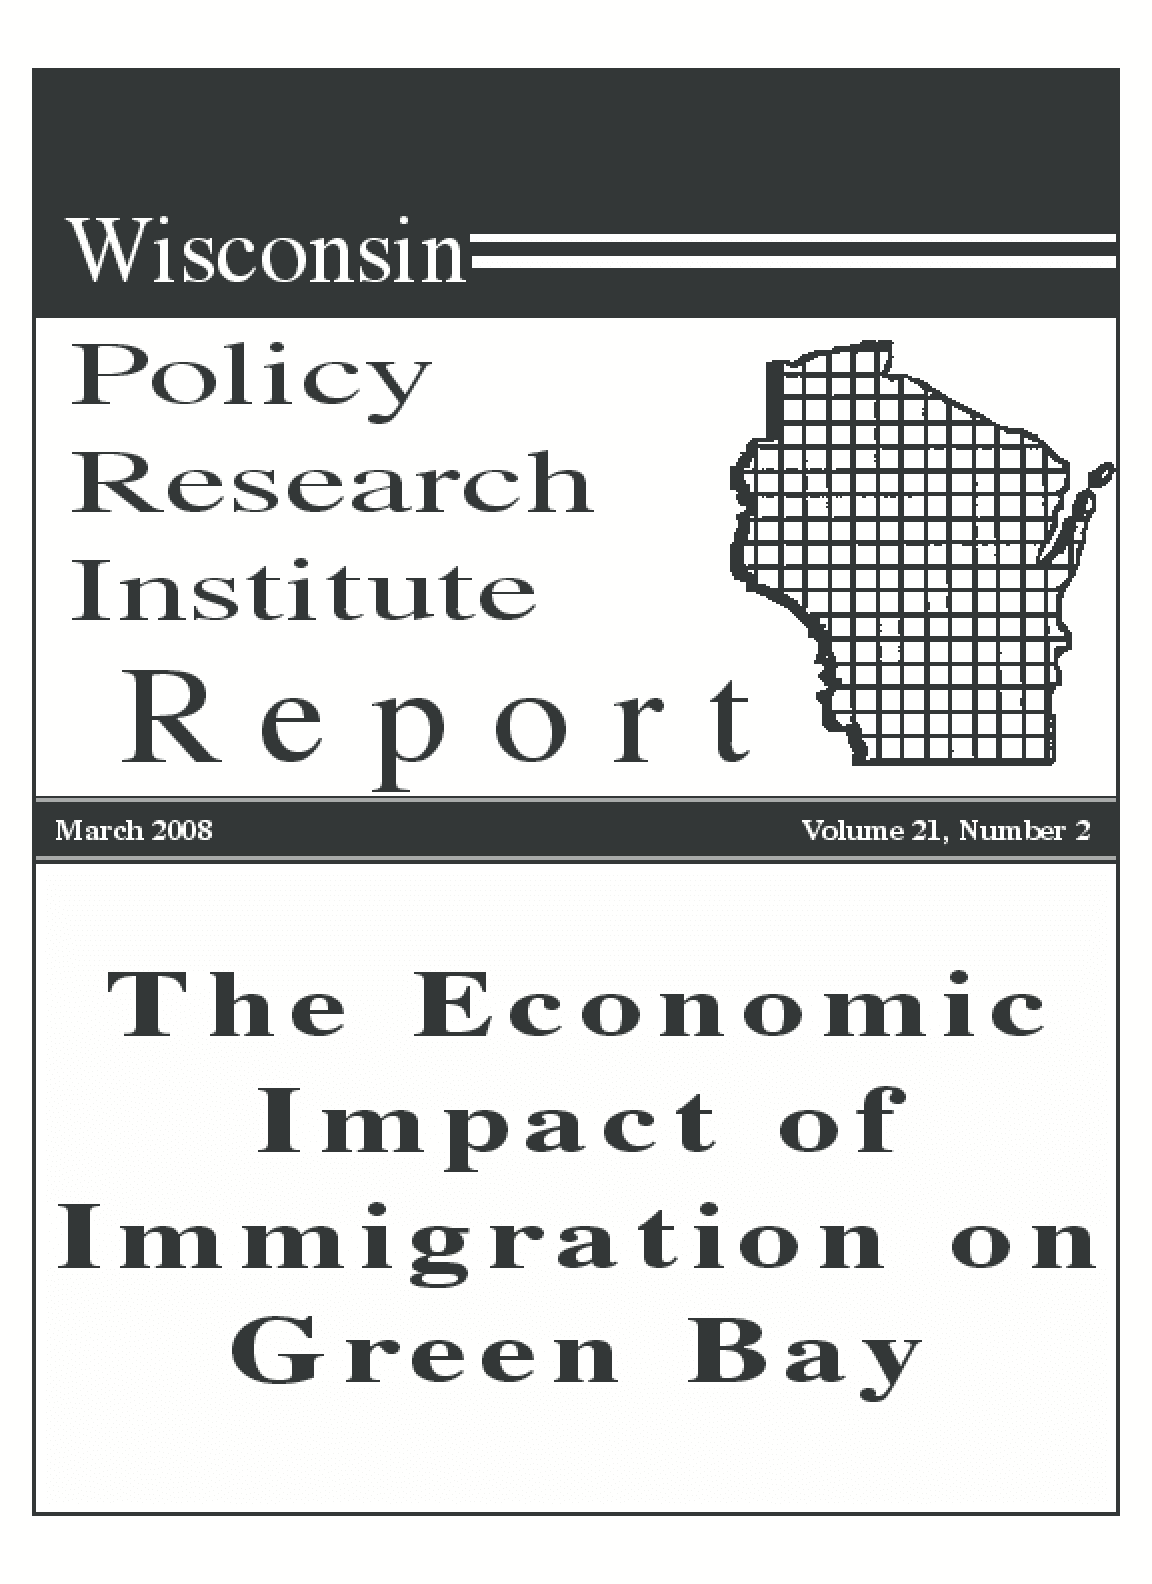 The Economic Impact of Immigration on Green Bay